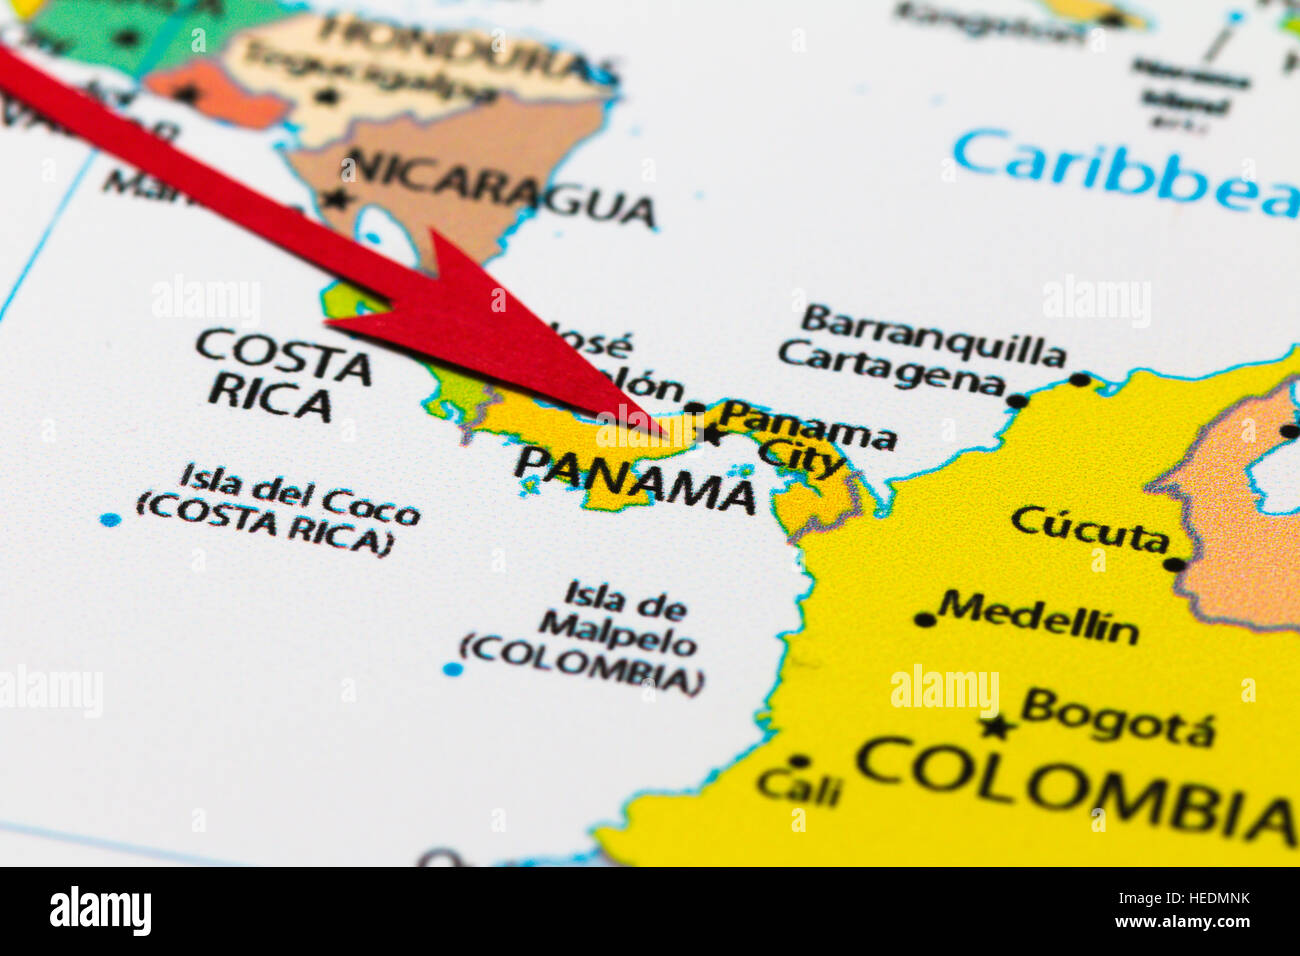 Red Arrow Pointing Panama On The Map Of South Central America - Map of costa rica central america